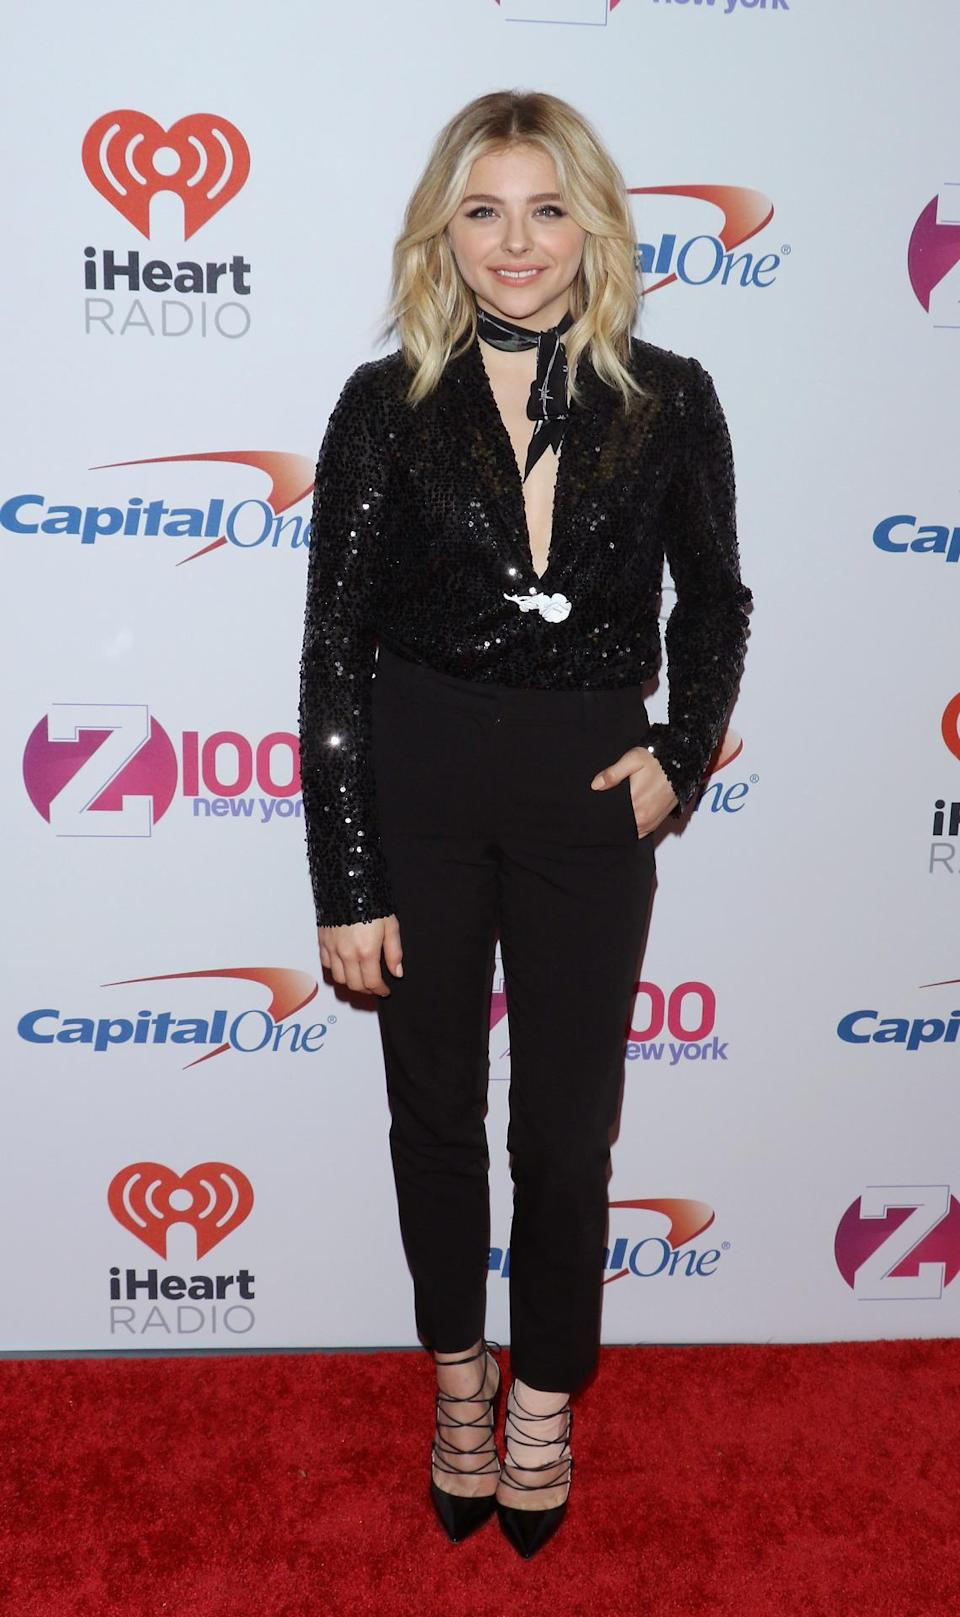 <p>The actress looked as if she was having a bit of trouble in the ankle department, but that didn't stop her from rocking her lace up high heels! Black trousers and a sparkly plunging long sleeve blouse constituted her look for the evening, which she finished off by tying a scarf around her neck.</p>